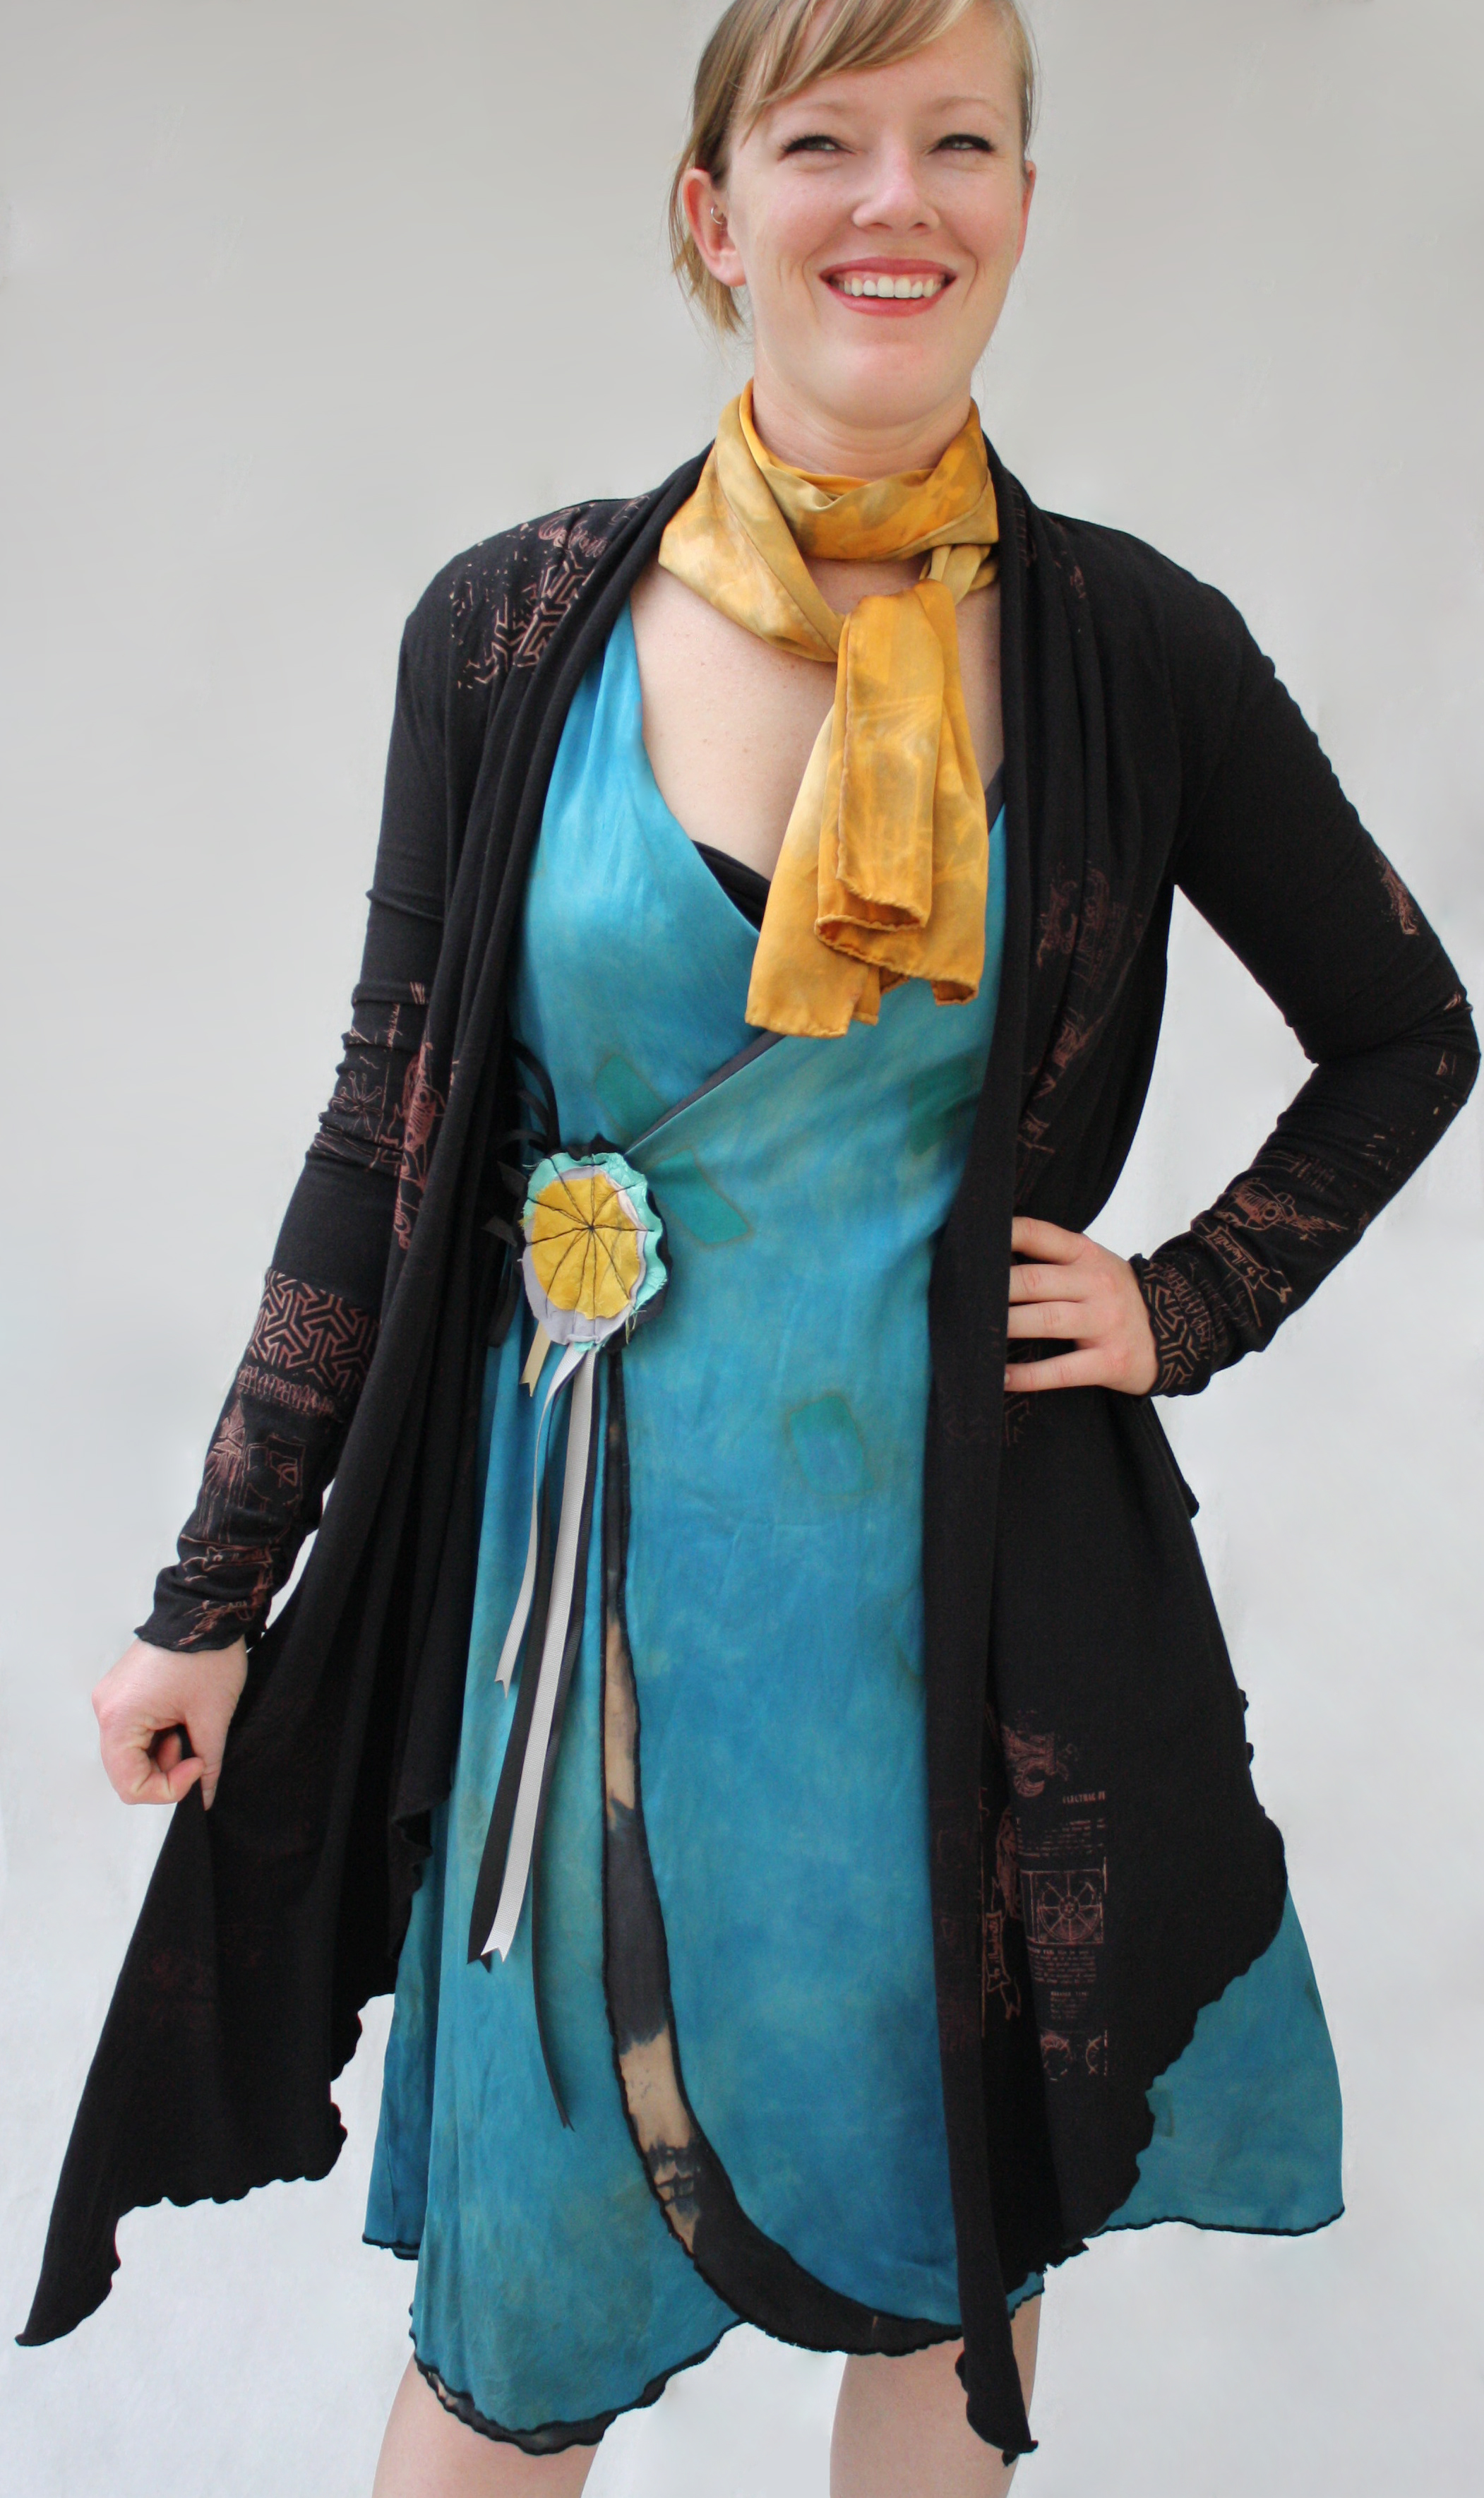 Cocoon Wrap Cardigan, Reversible Dress, & Scribble Scarf.